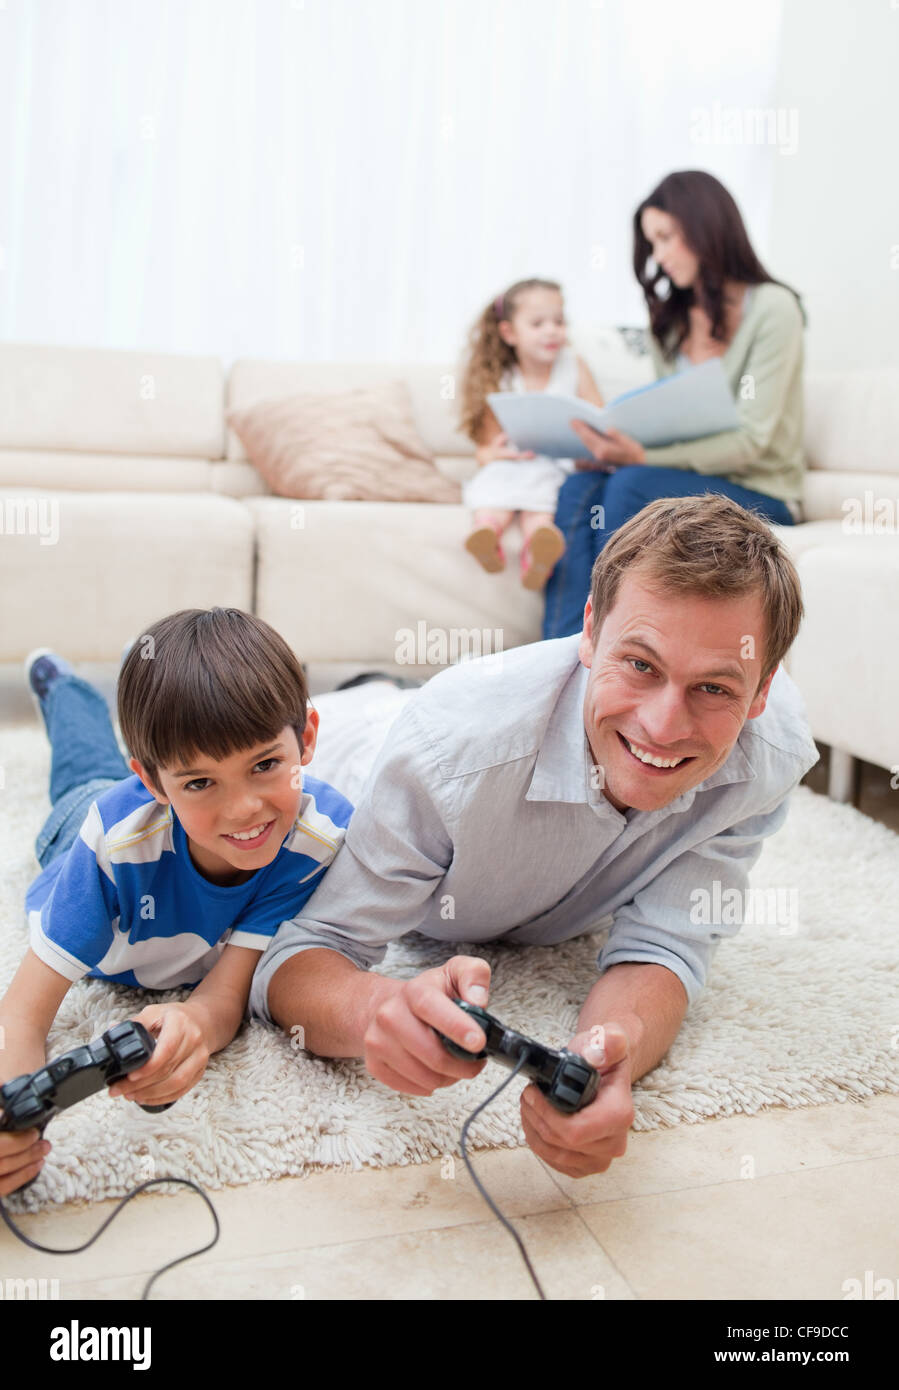 Family enjoys spending their spare time together - Stock Image